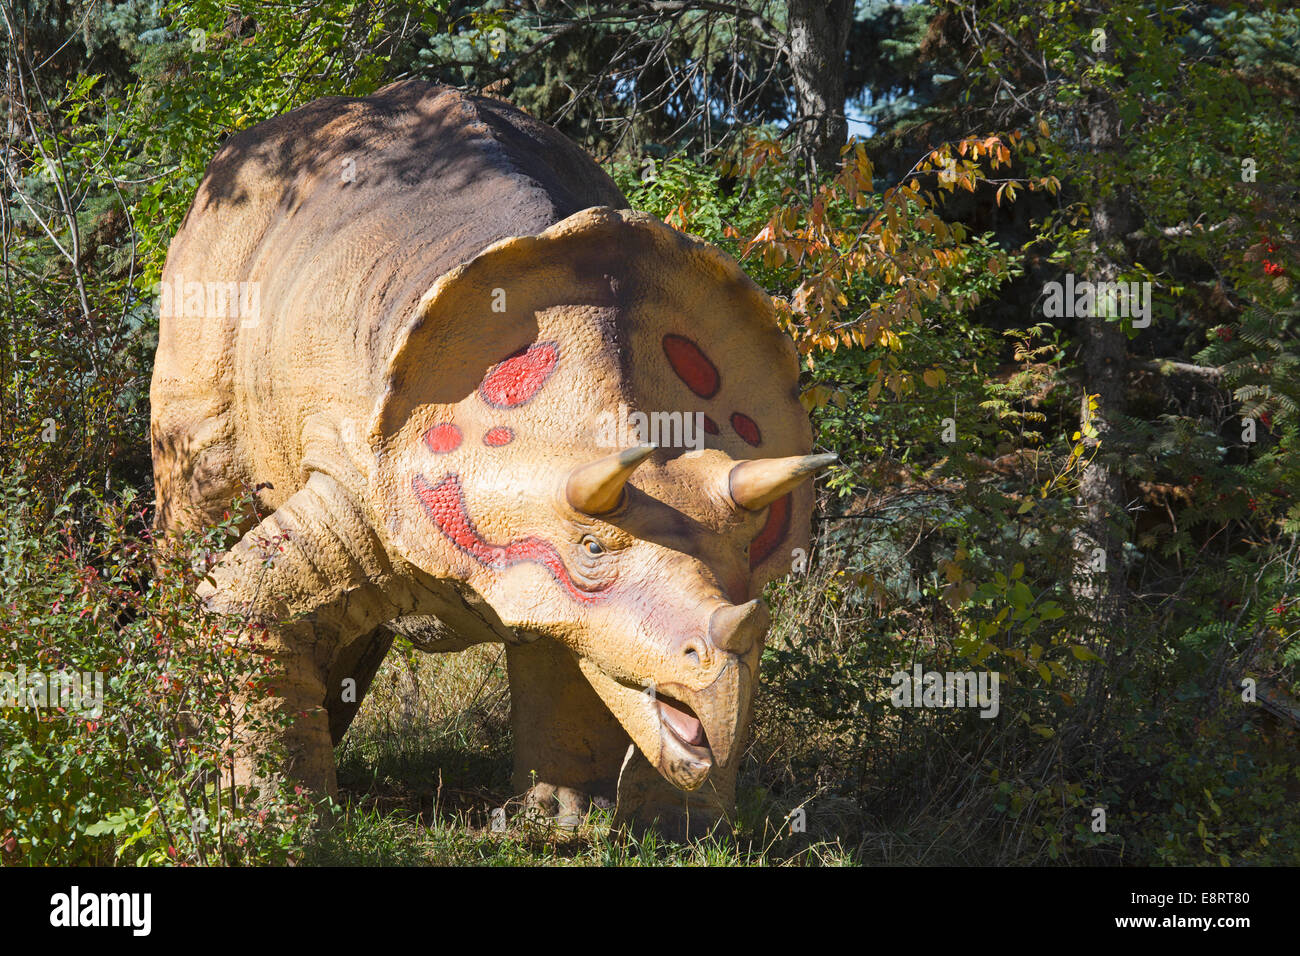 Dinosaur model at the Calgary Zoo prehistoric park - Stock Image